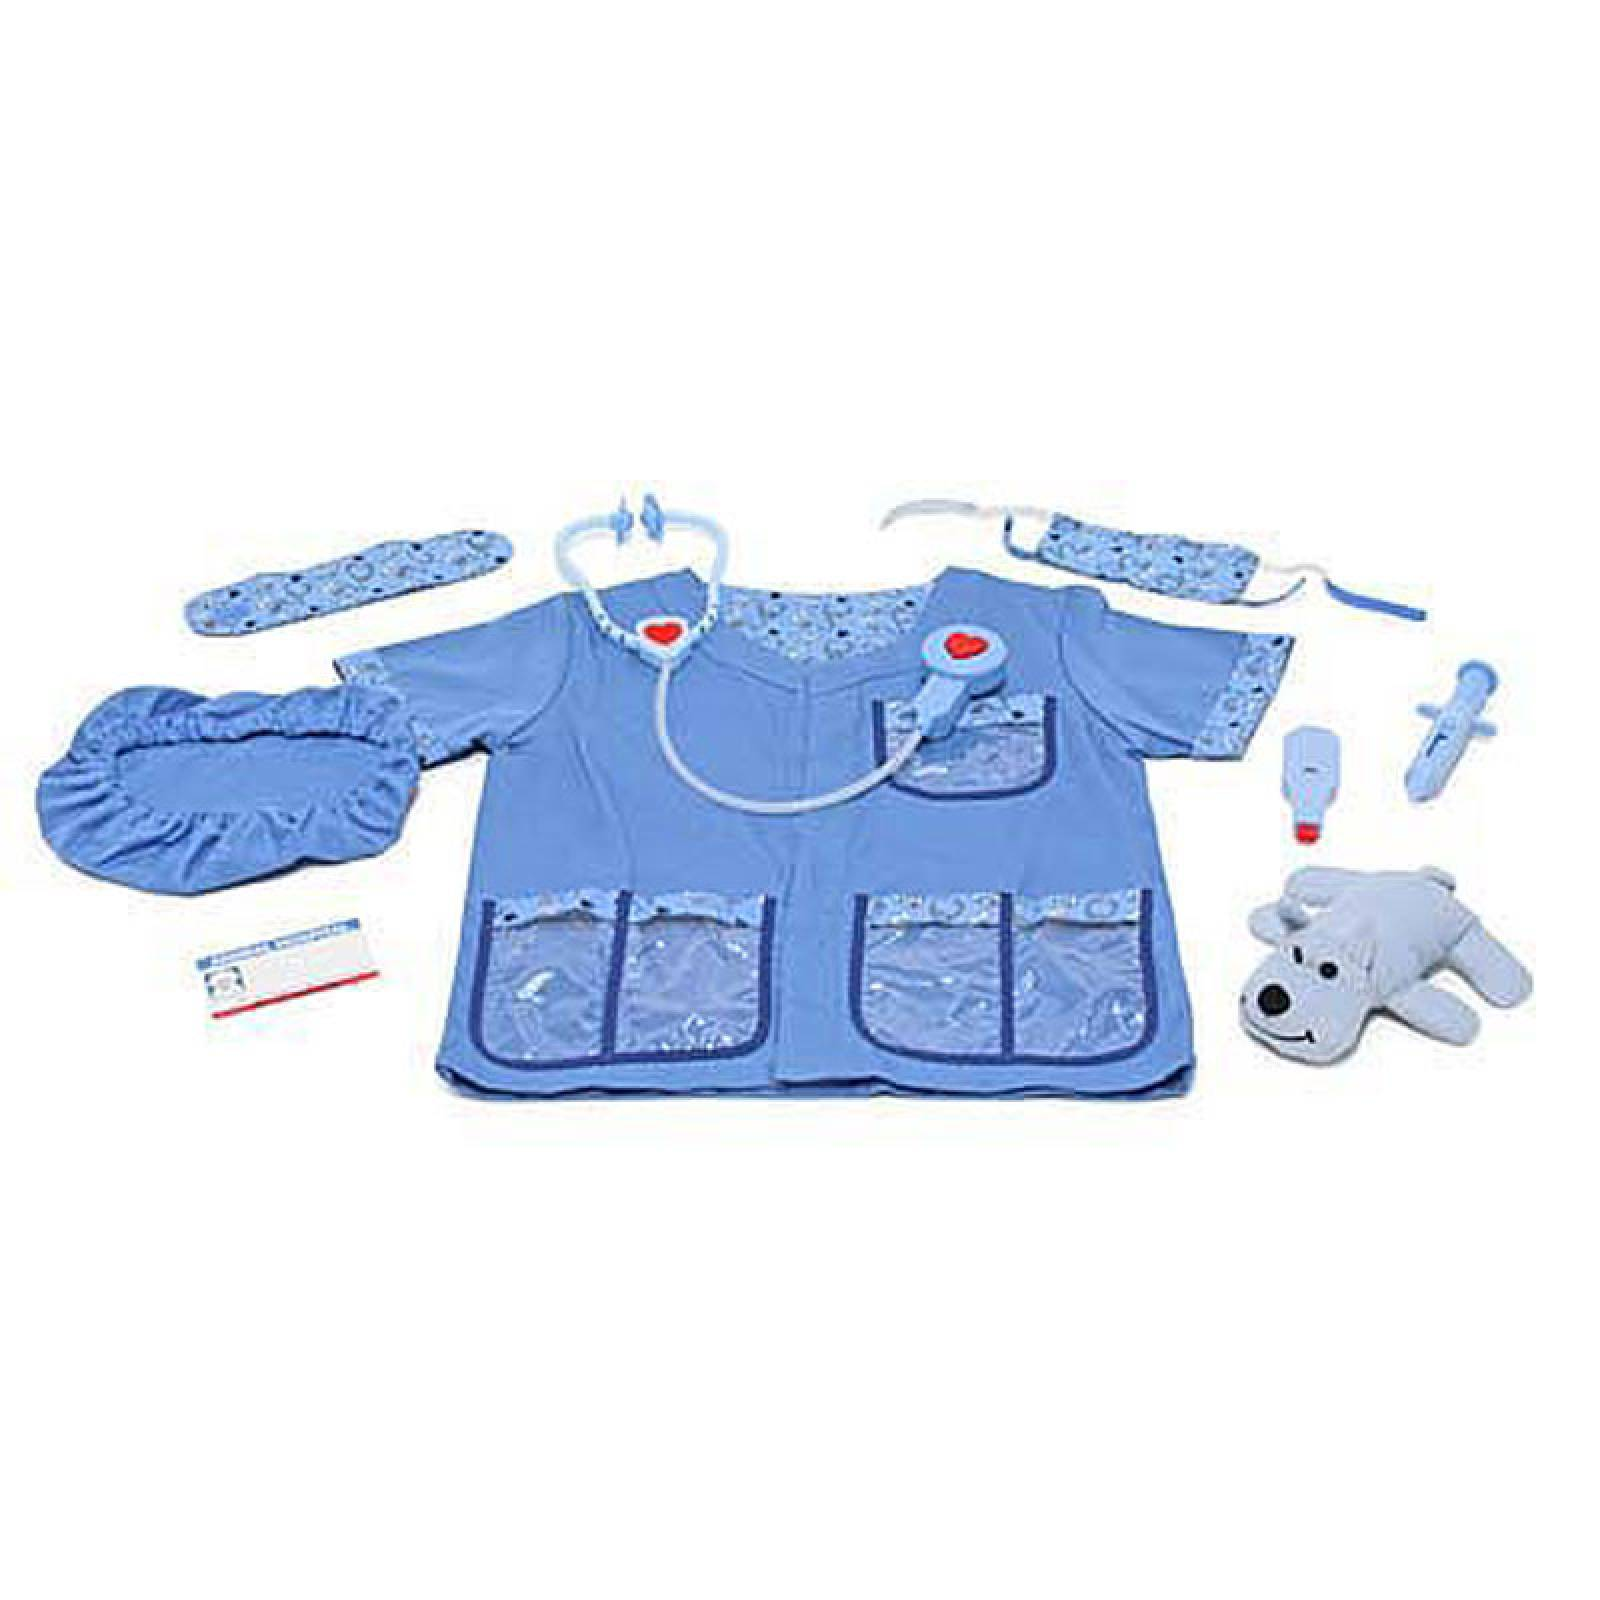 Veterinarian Fancy Dress Role Play Costume Set thumbnails